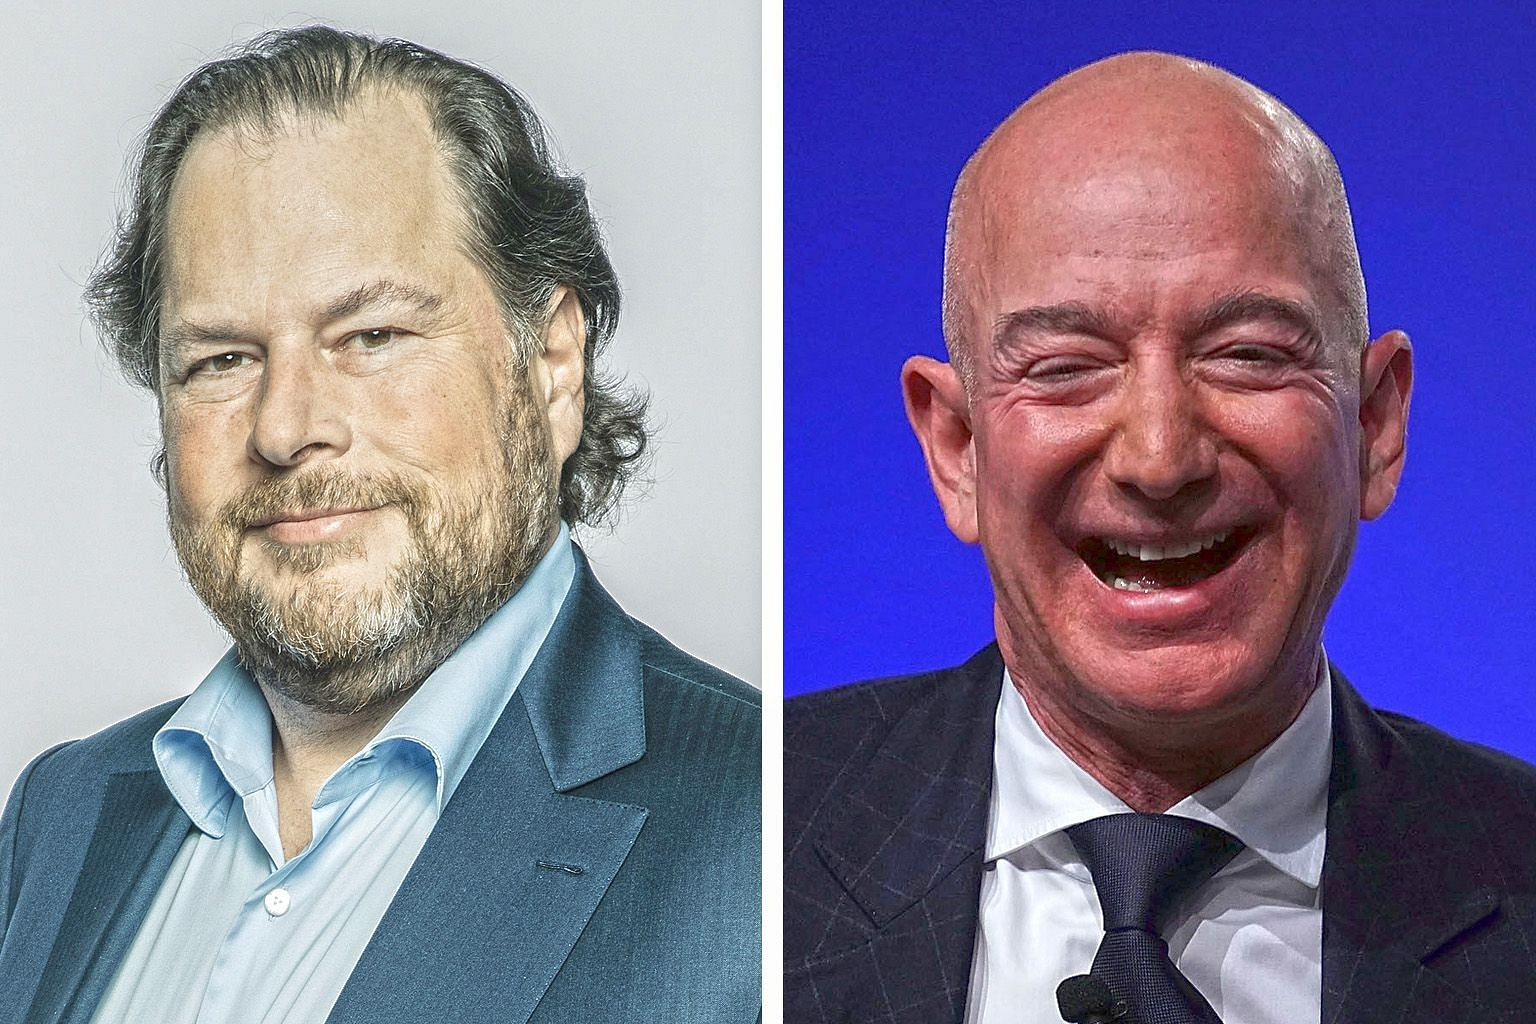 Salesforce founder Marc Benioff (left) and Amazon.com founder Jeff Bezos are among a group of tech moguls to buy a diminished media asset recently. Mr Benioff bought Time magazine and Mr Bezos bought The Washington Post.